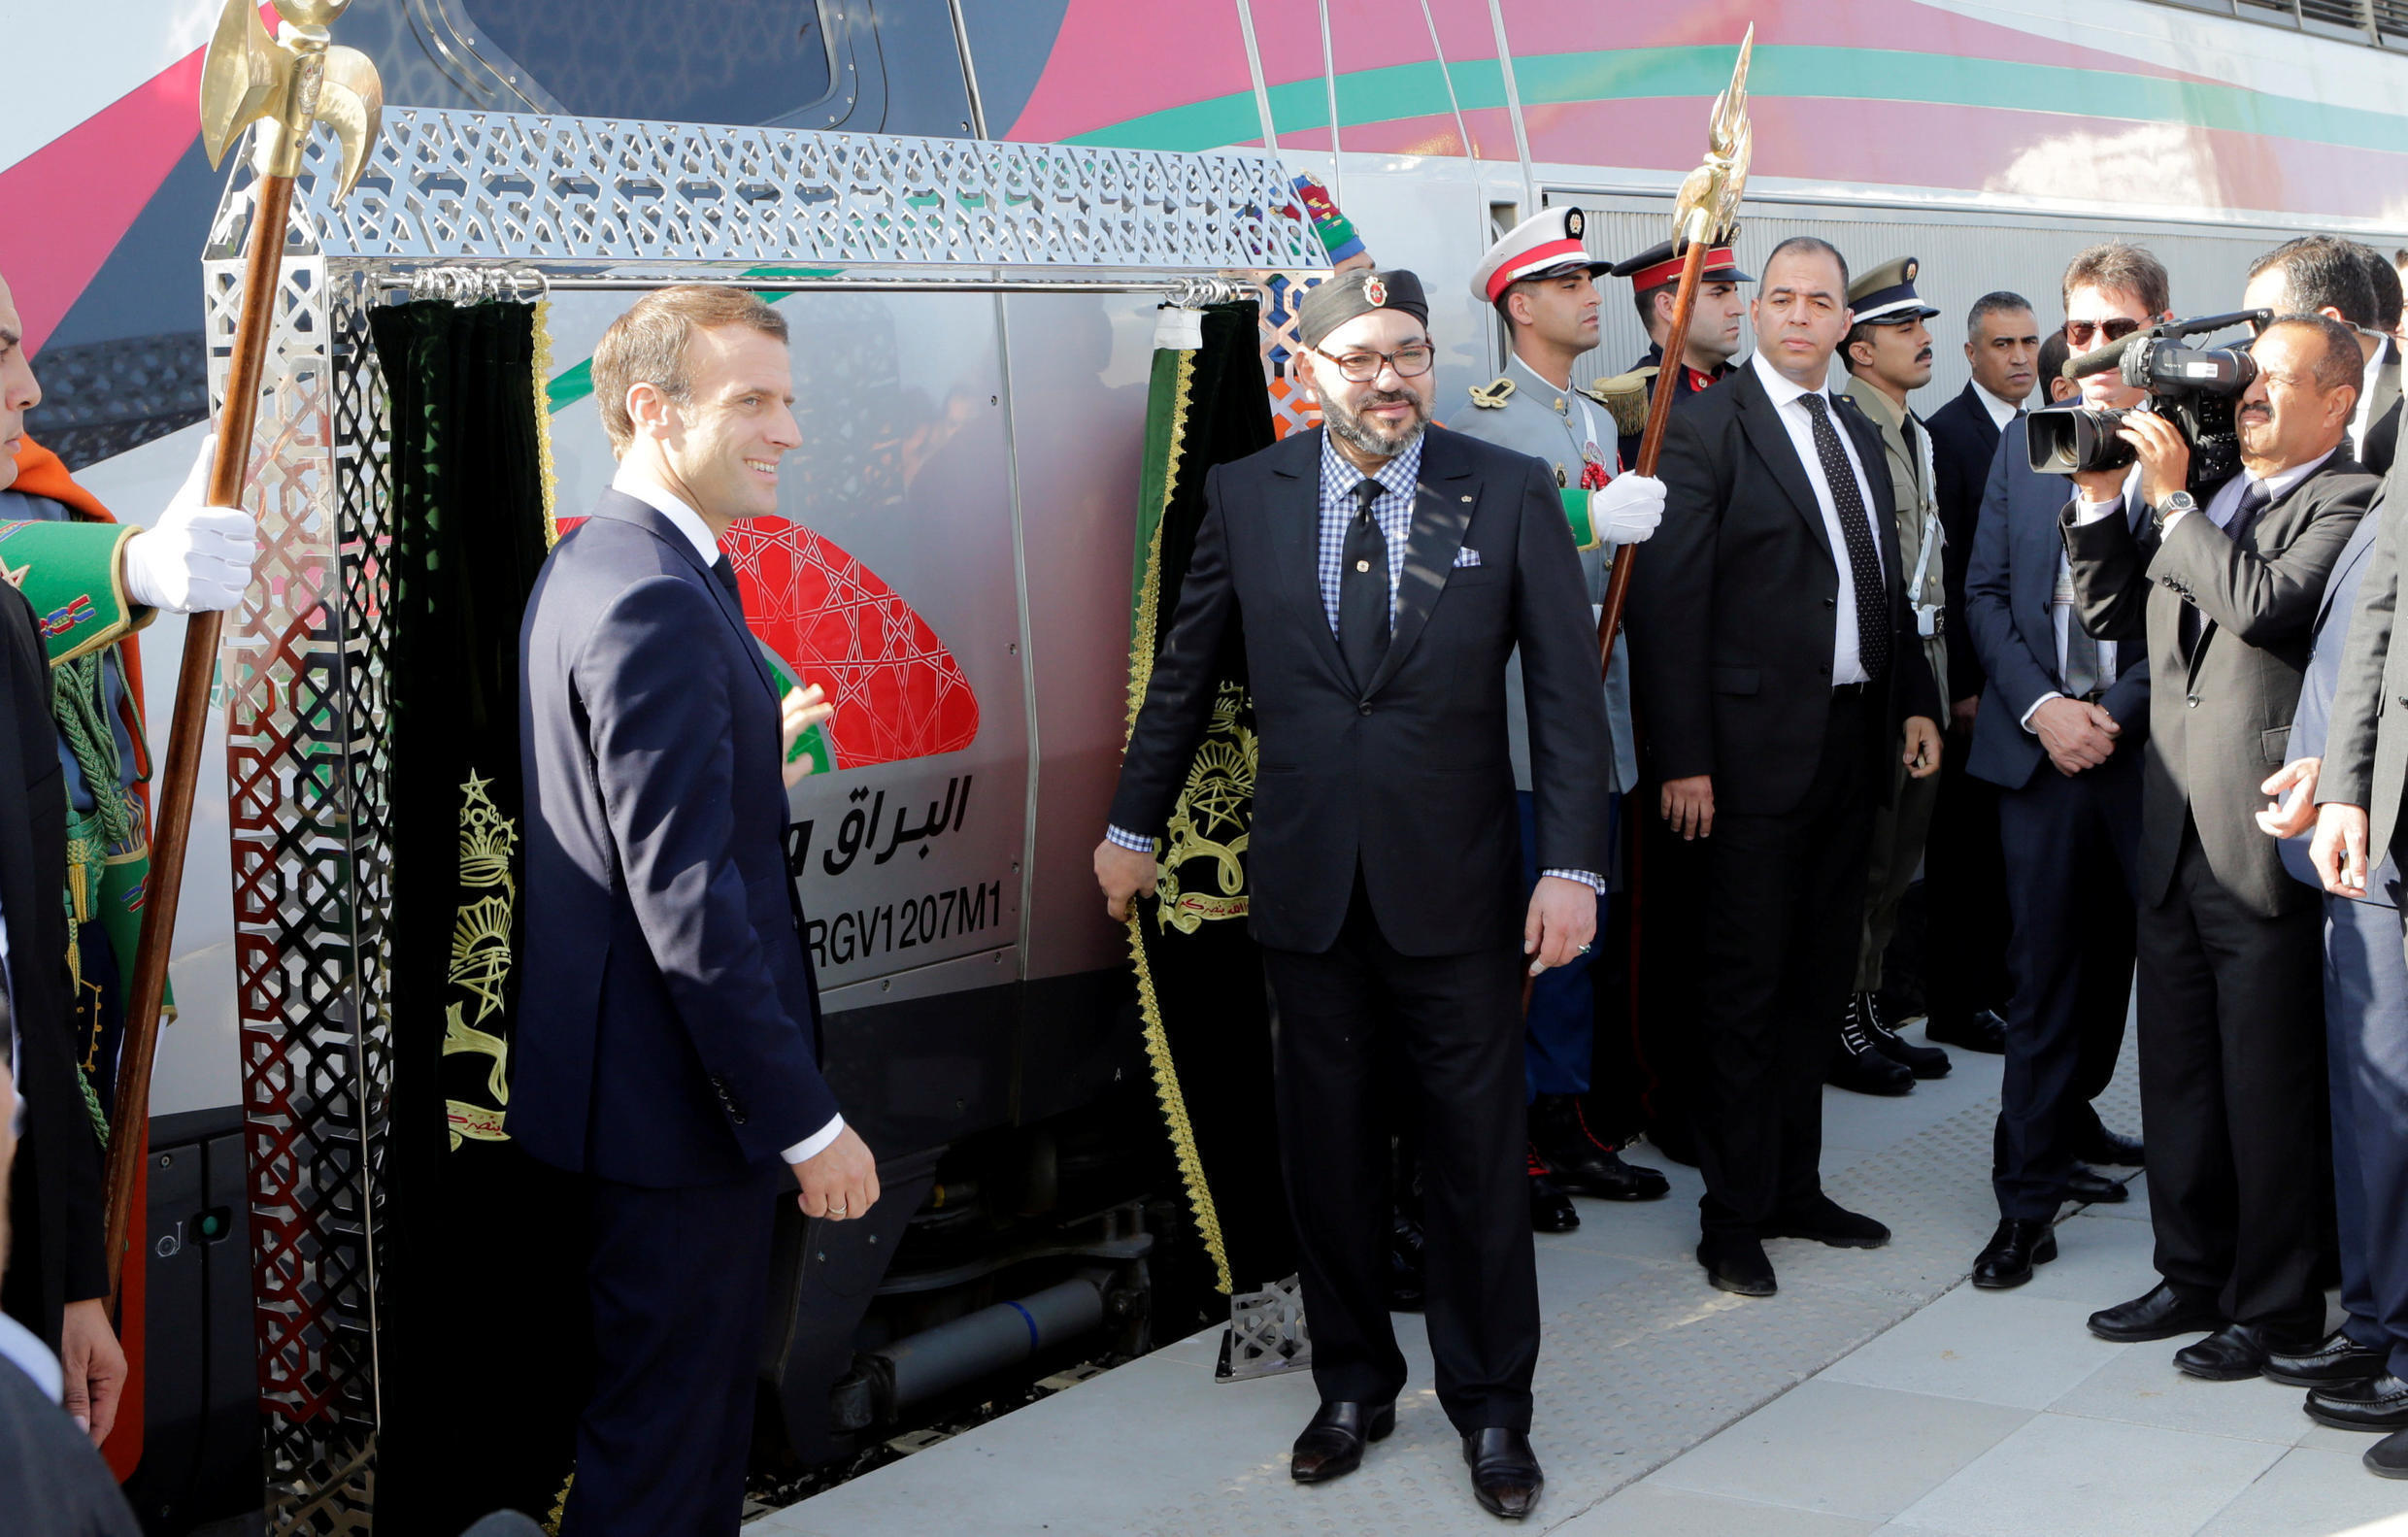 French President Emmanuel Macron and Moroccan King Mohammed VI attend the launch ceremony of the first High Speed Train to operate in Africa, in Tangier, Morocco November 15, 2018.